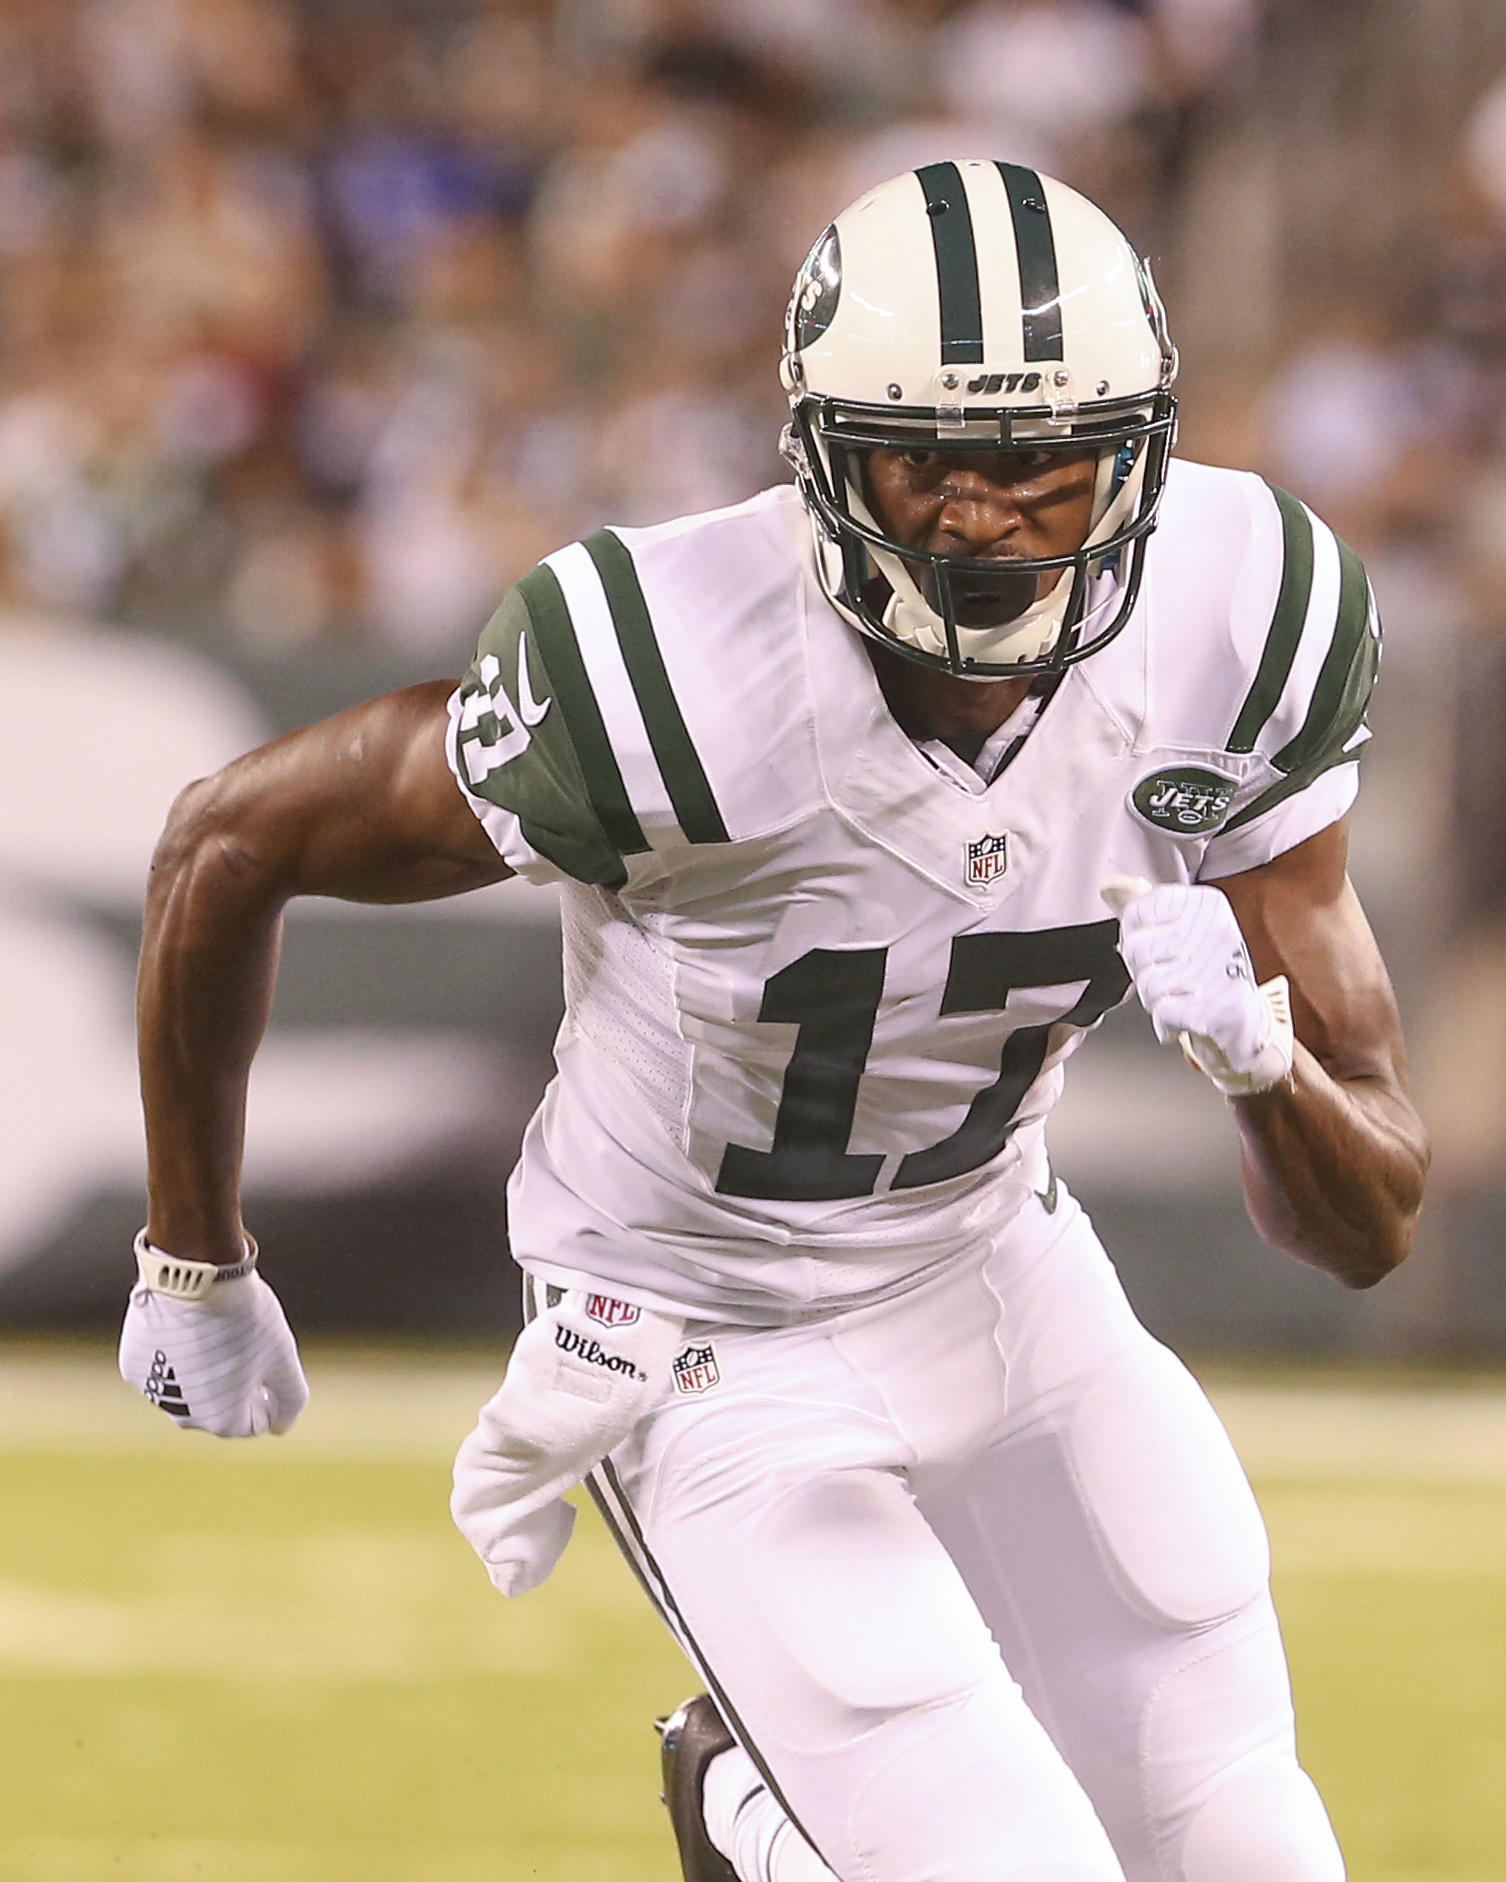 FILE - In this Aug. 11, 2016, file photo, New York Jets wide receiver Charone Peake (17) runs a pass pattern against the Jacksonville Jaguars during a preseason NFL football game, in East Rutherford, NJ. Brandon Marshall realizes the Jets suffered a big l